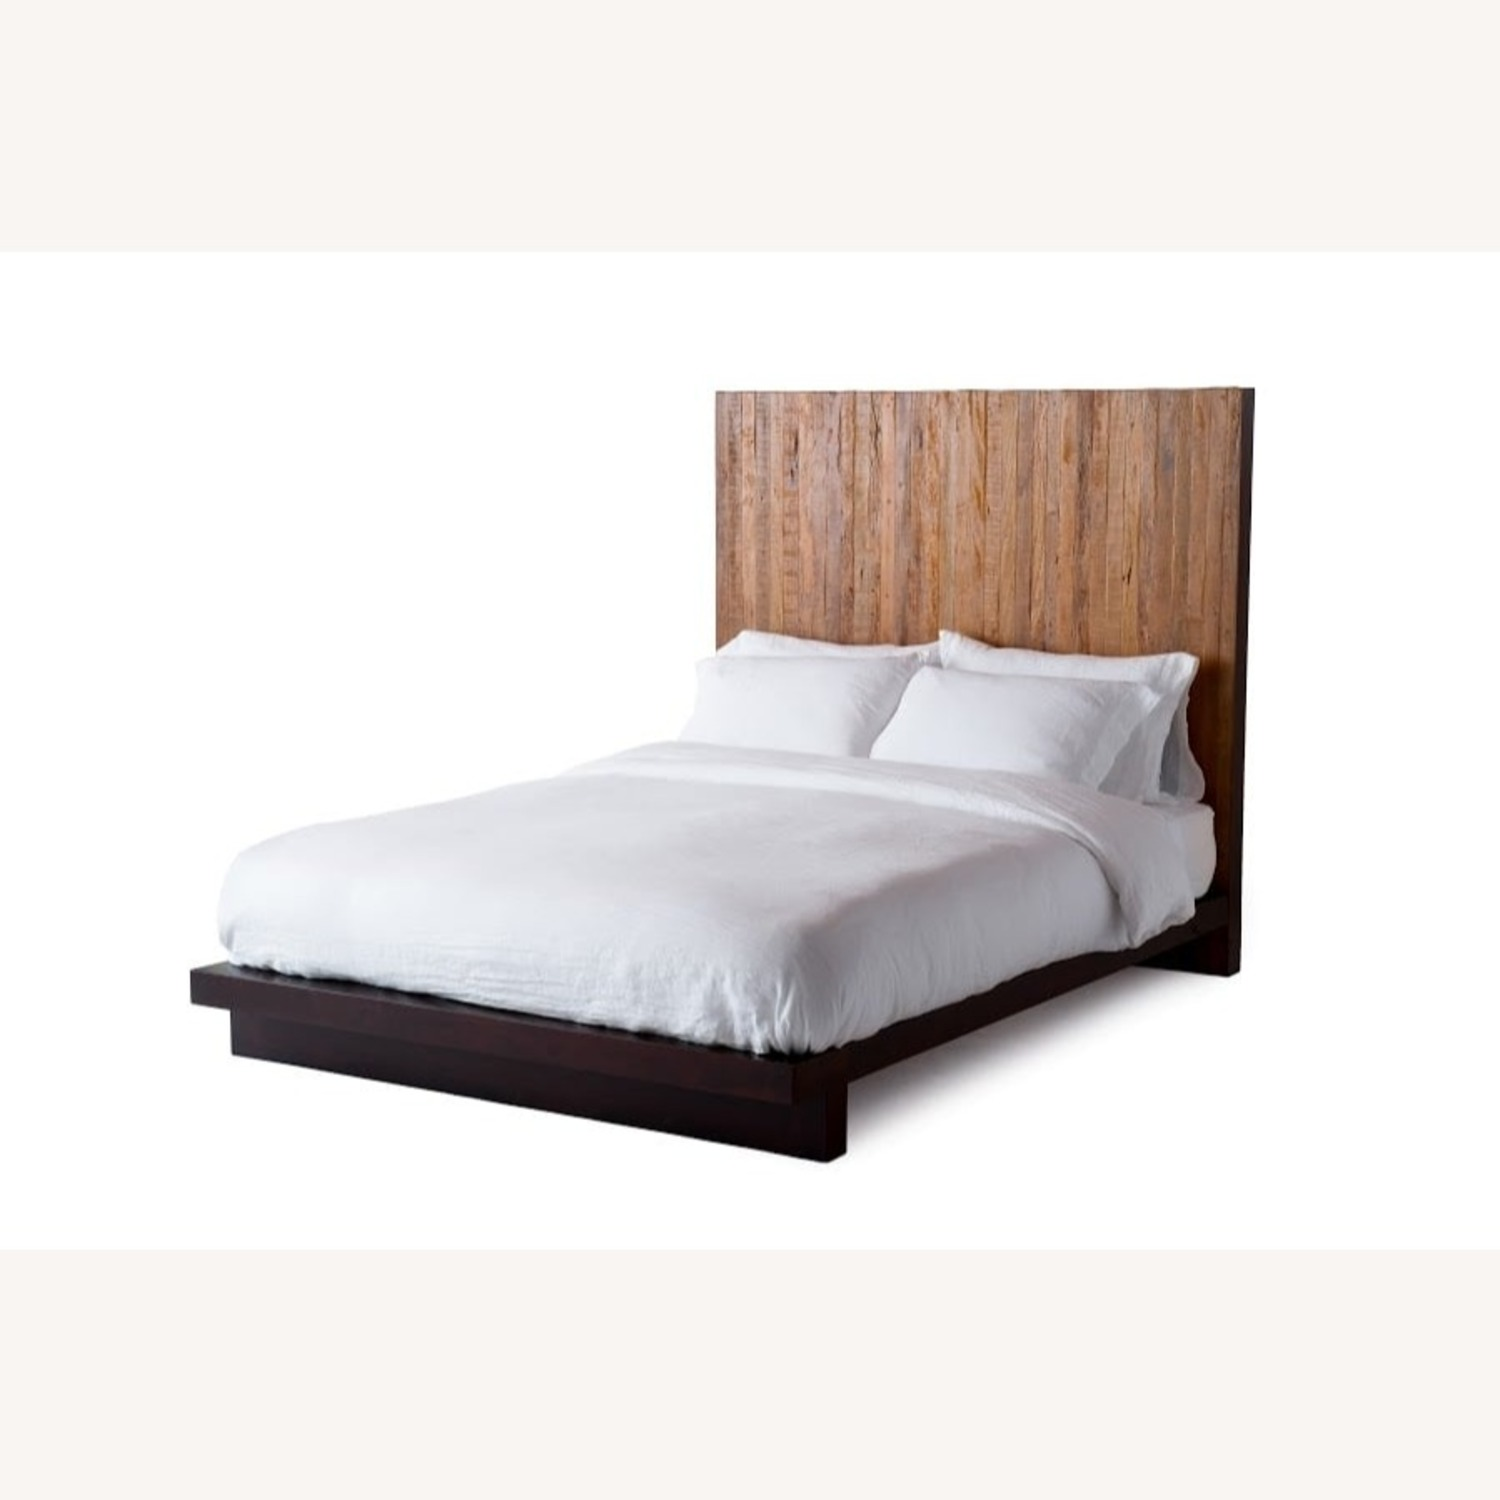 Environment Furniture Reclaimed Brazilian Peroba Wood Bed - image-0